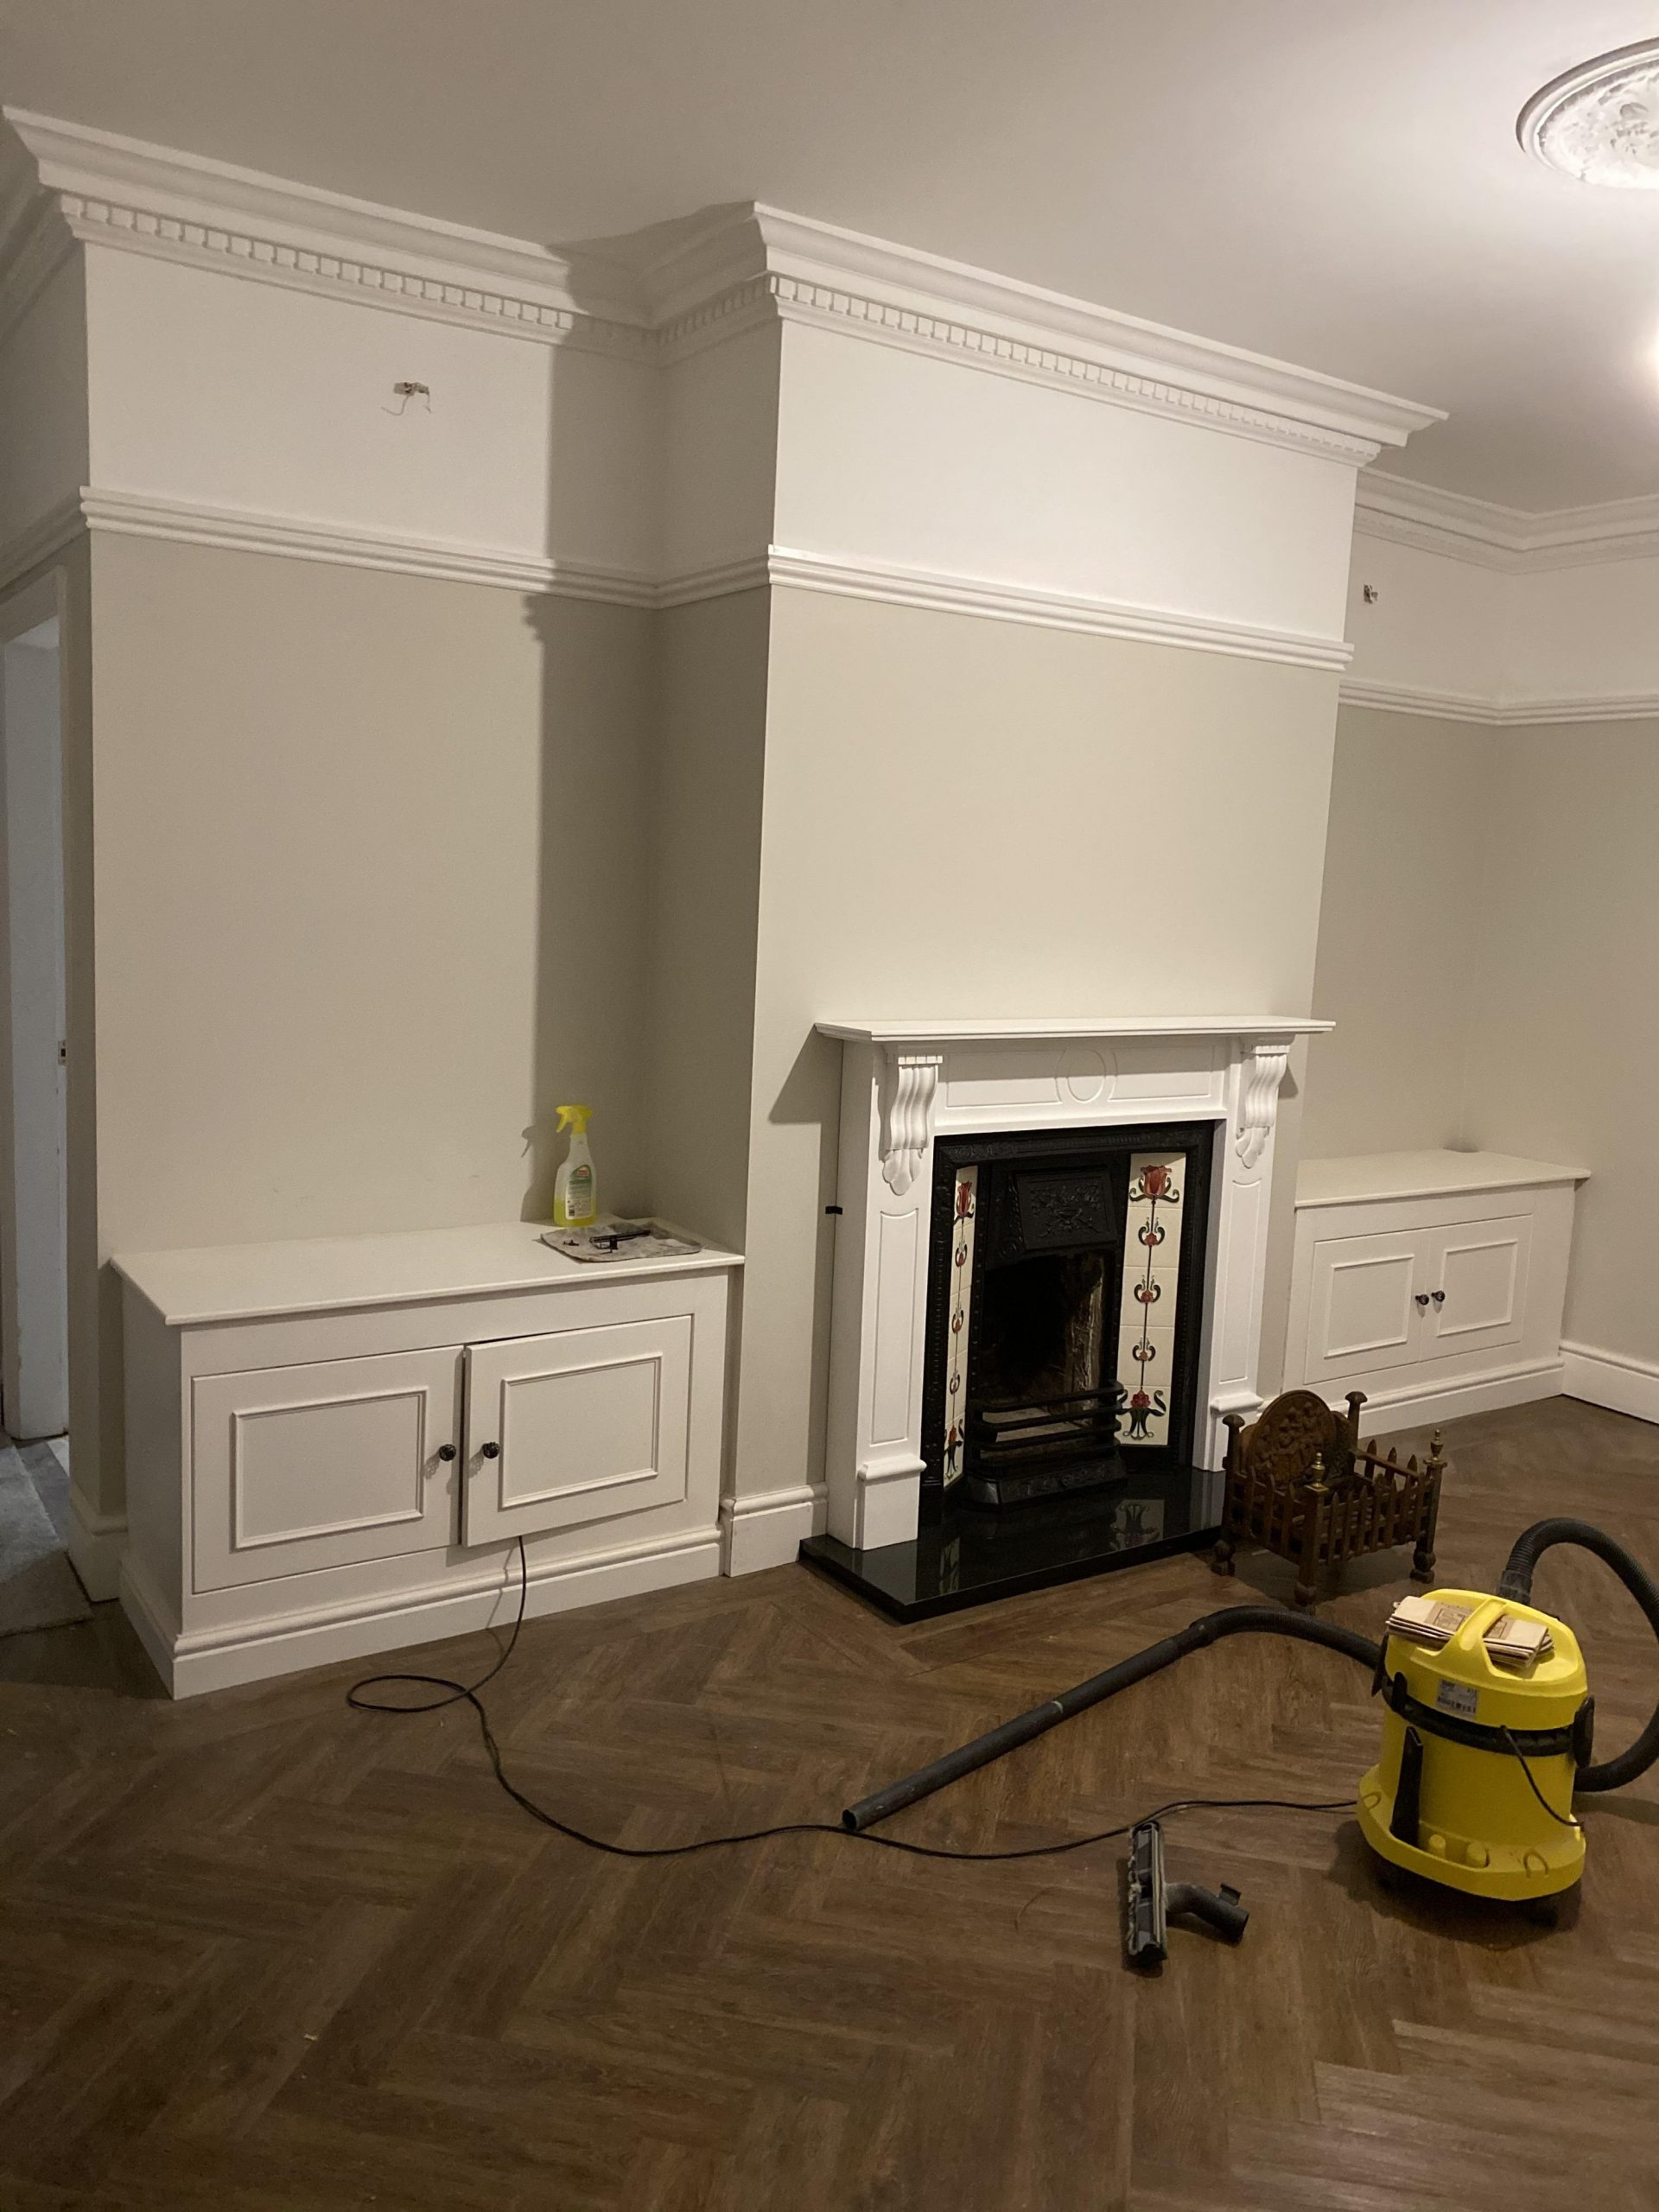 Bespoke Cabinets Either Side Of Chimney Breast. : Carpentry 30+ Living Room Chimney Breast Inspirations